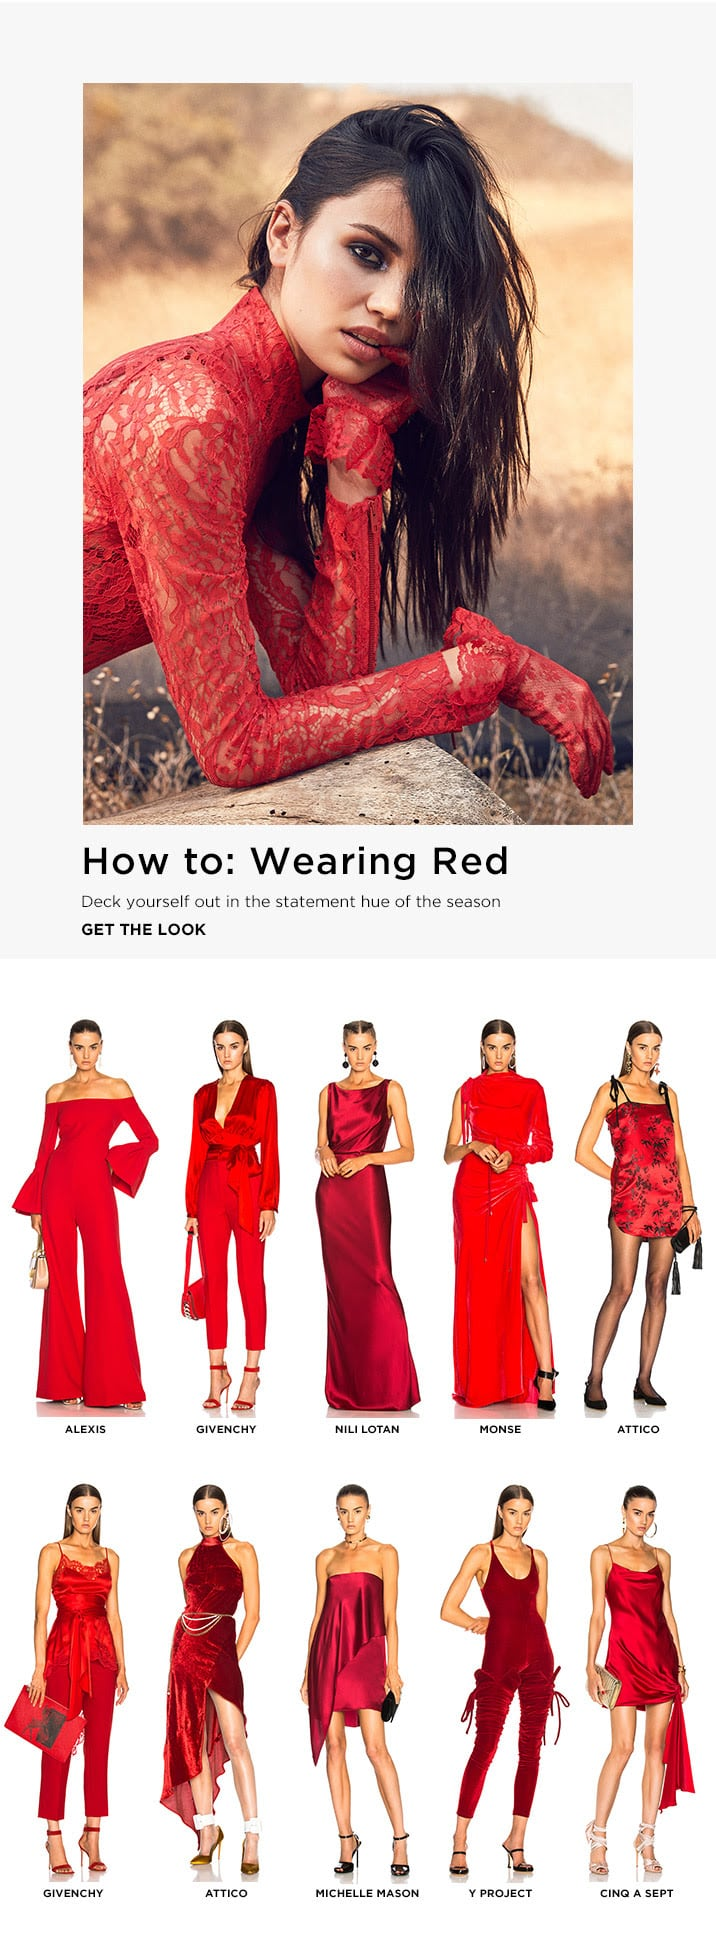 How to: Wearing Red - Get the Look